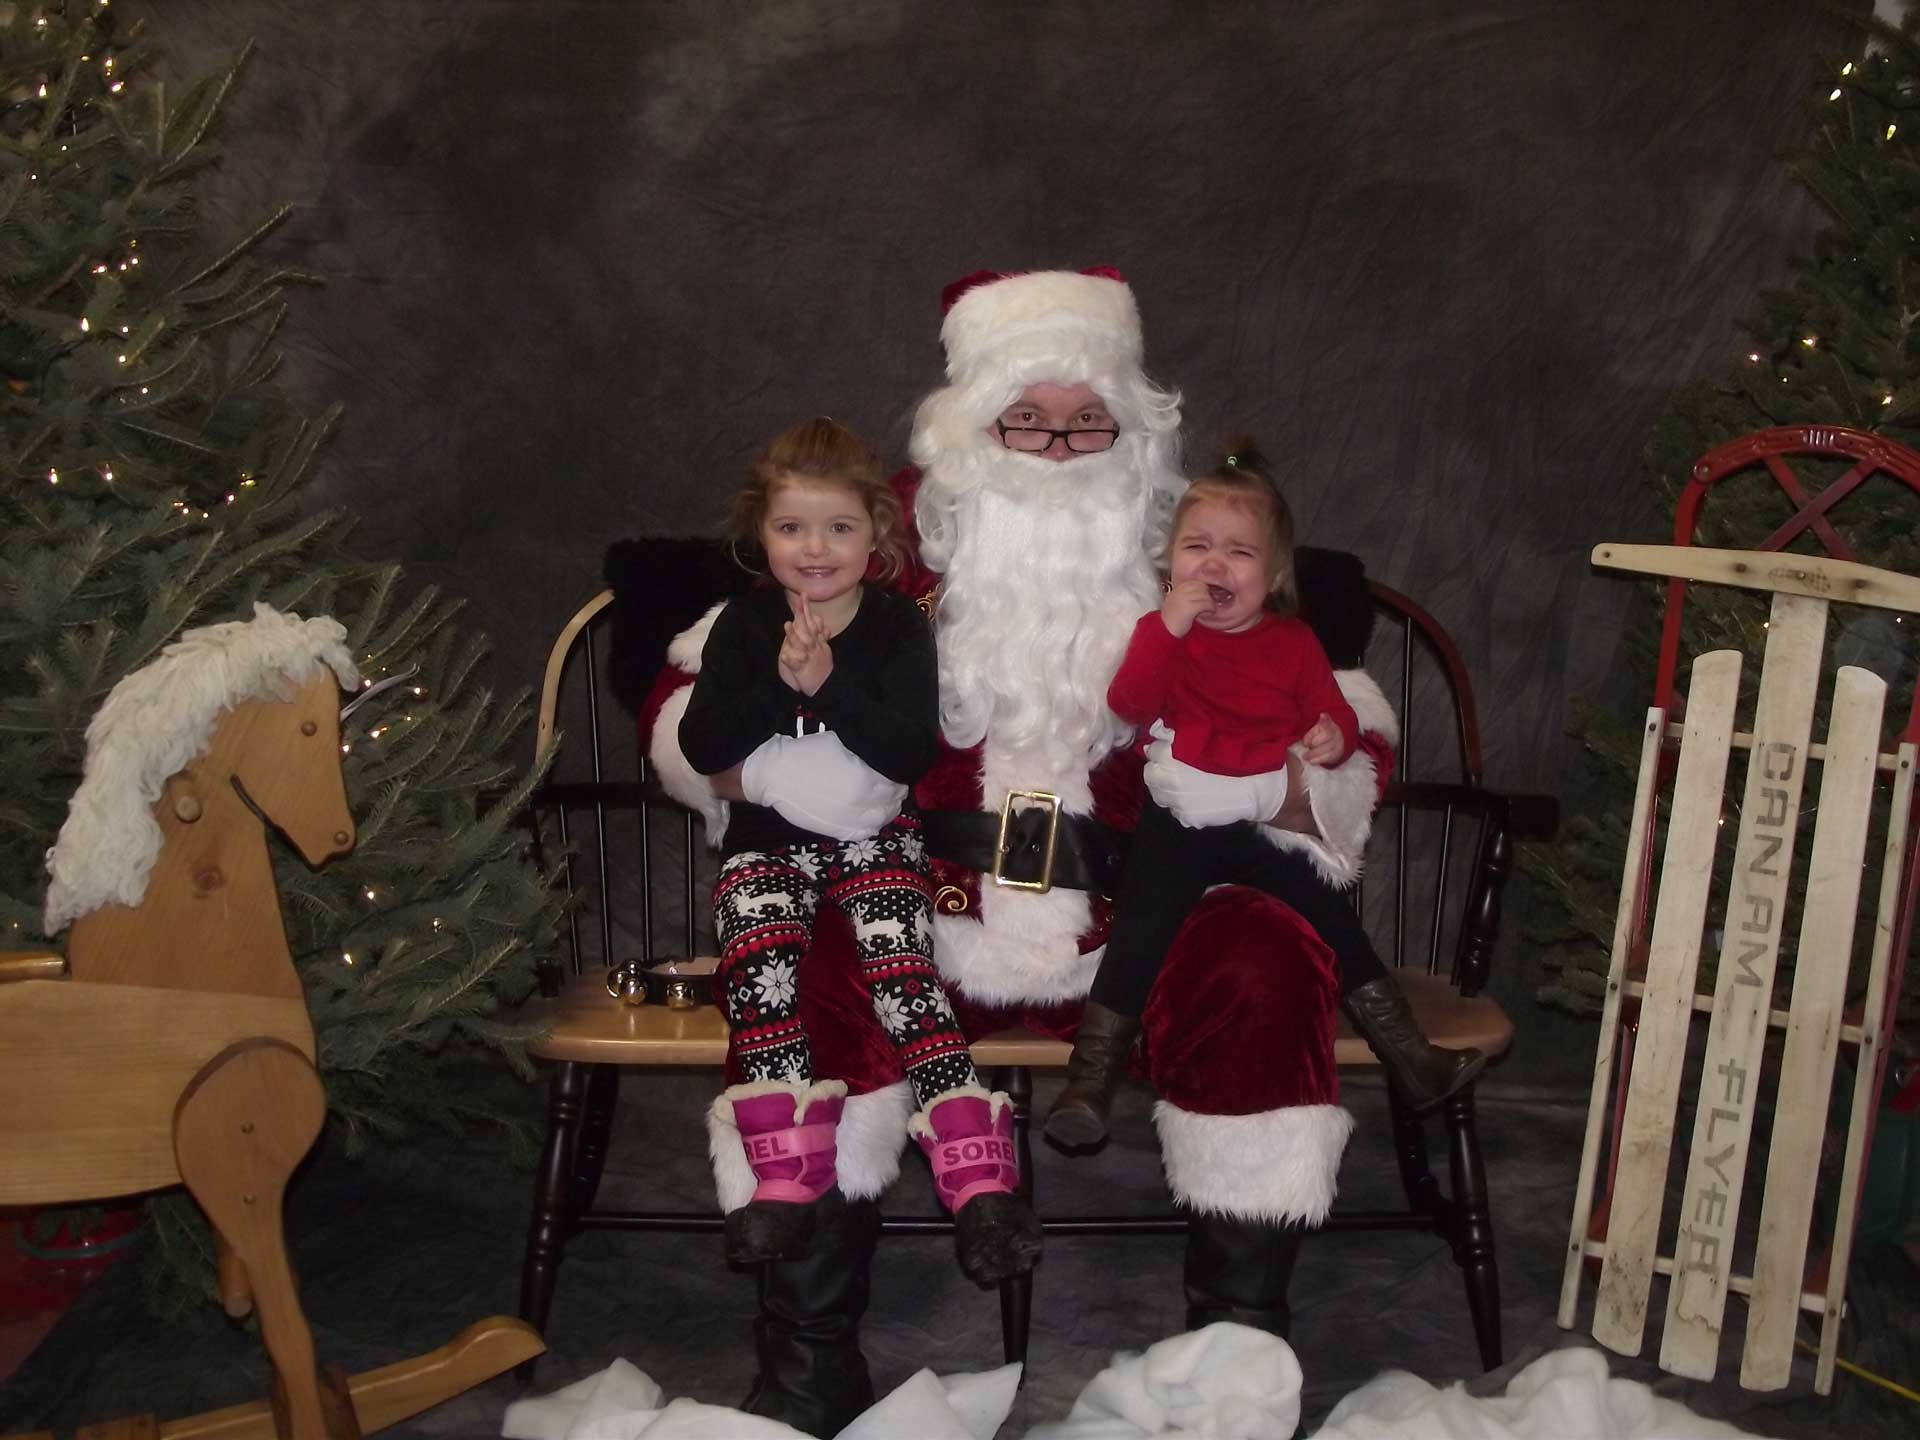 Milk & Cookie Night with Santa – A New Tradition? (Decorative Picture: Children with Santa)